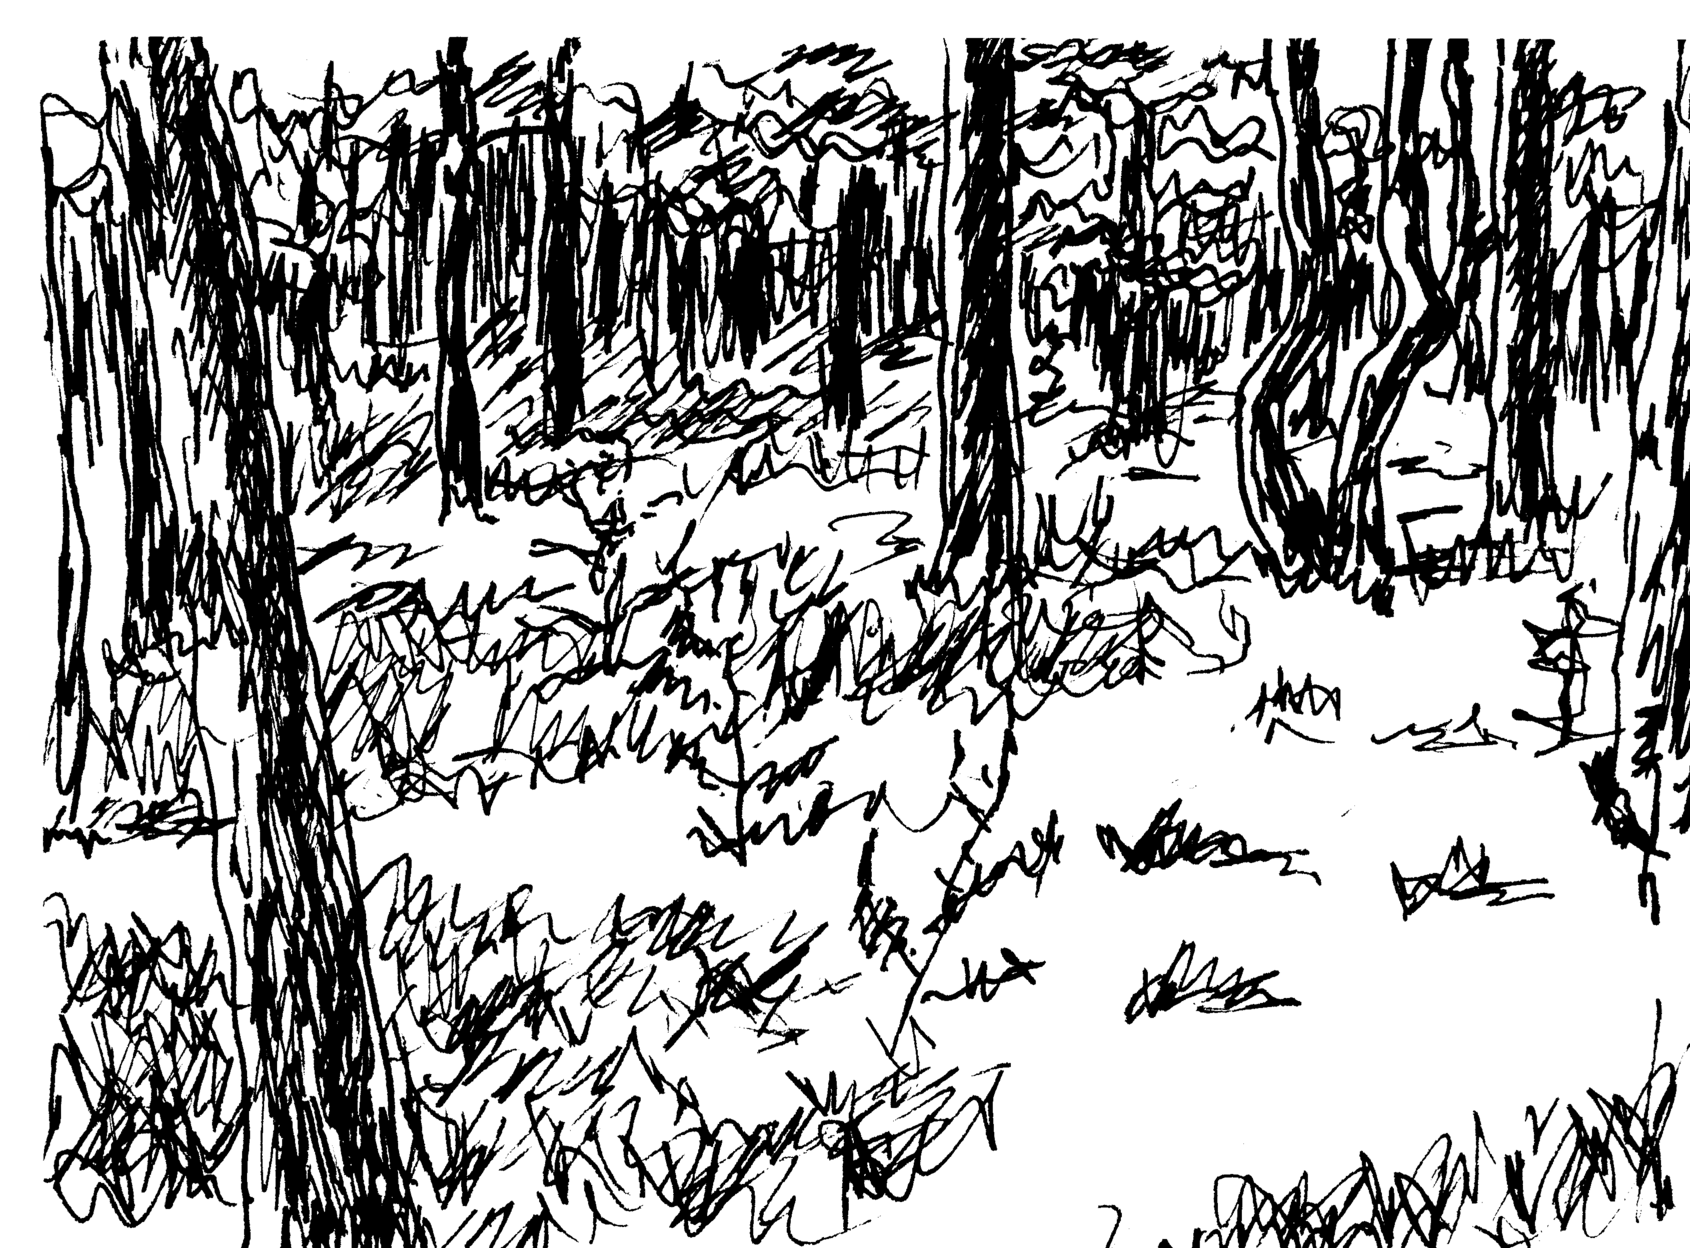 An ink drawing of pines trees in forest.